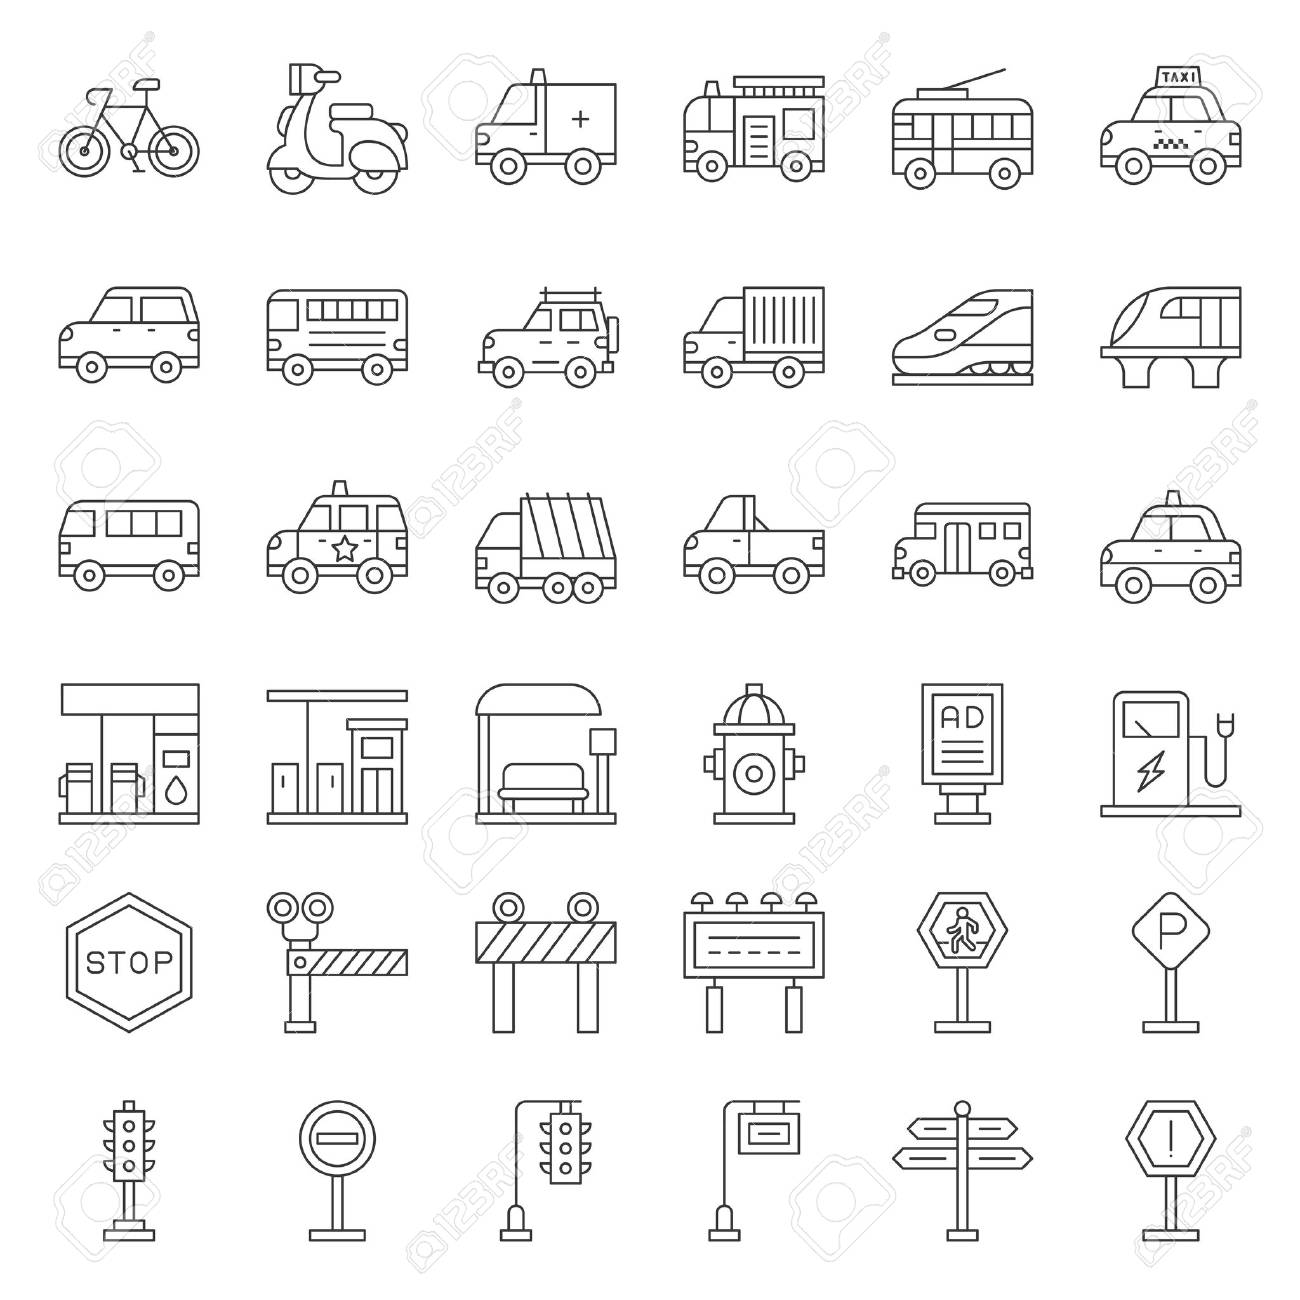 Transportation set with sign on road side, outline icon - 111393433